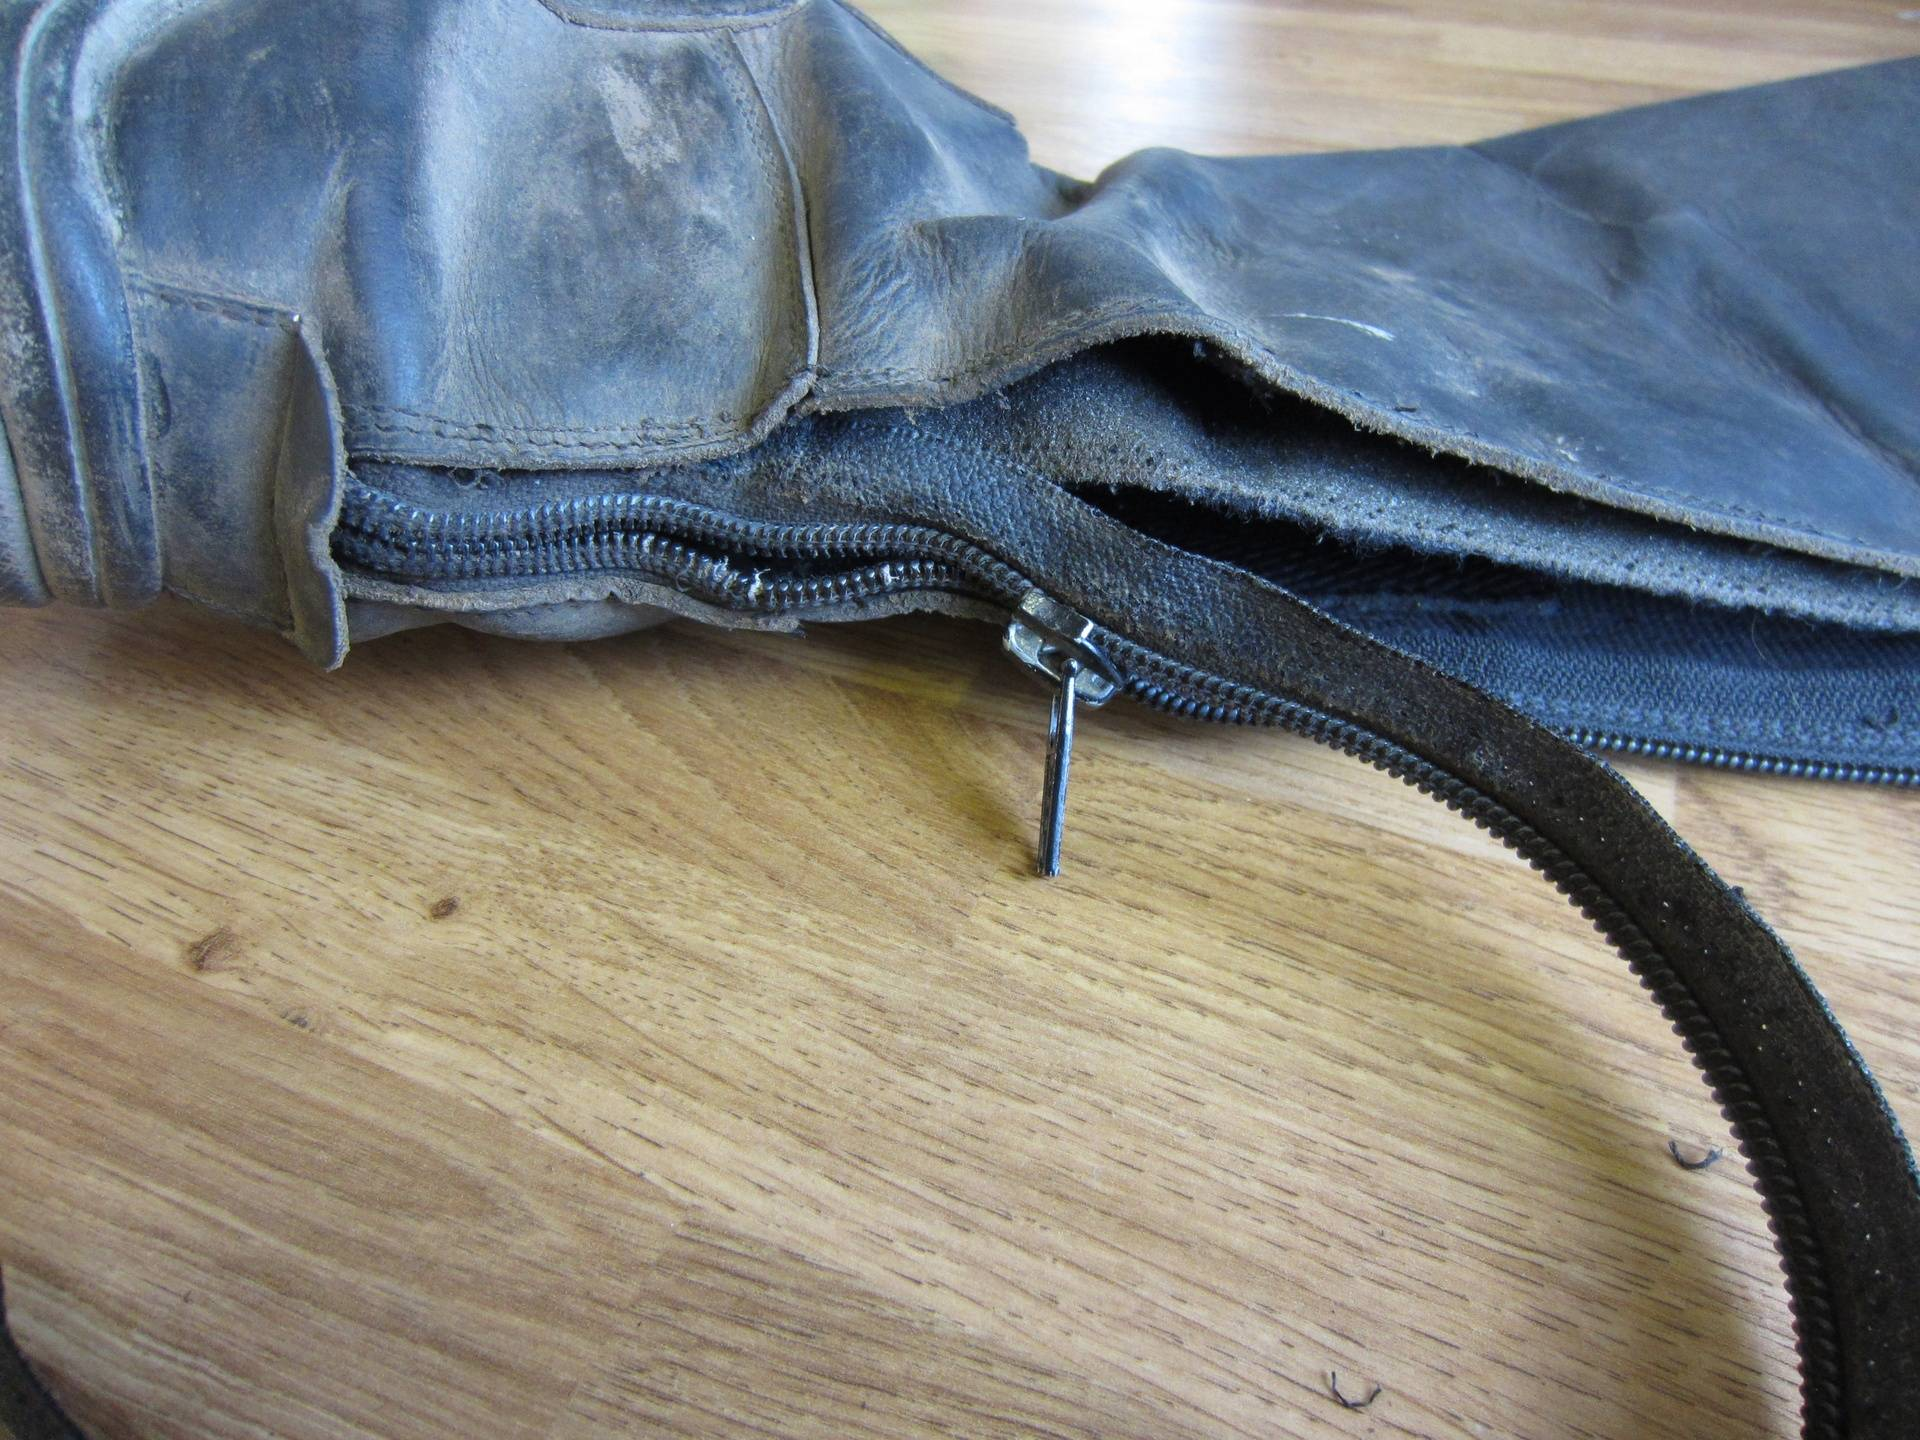 Cut stitching to relese zip out of boot